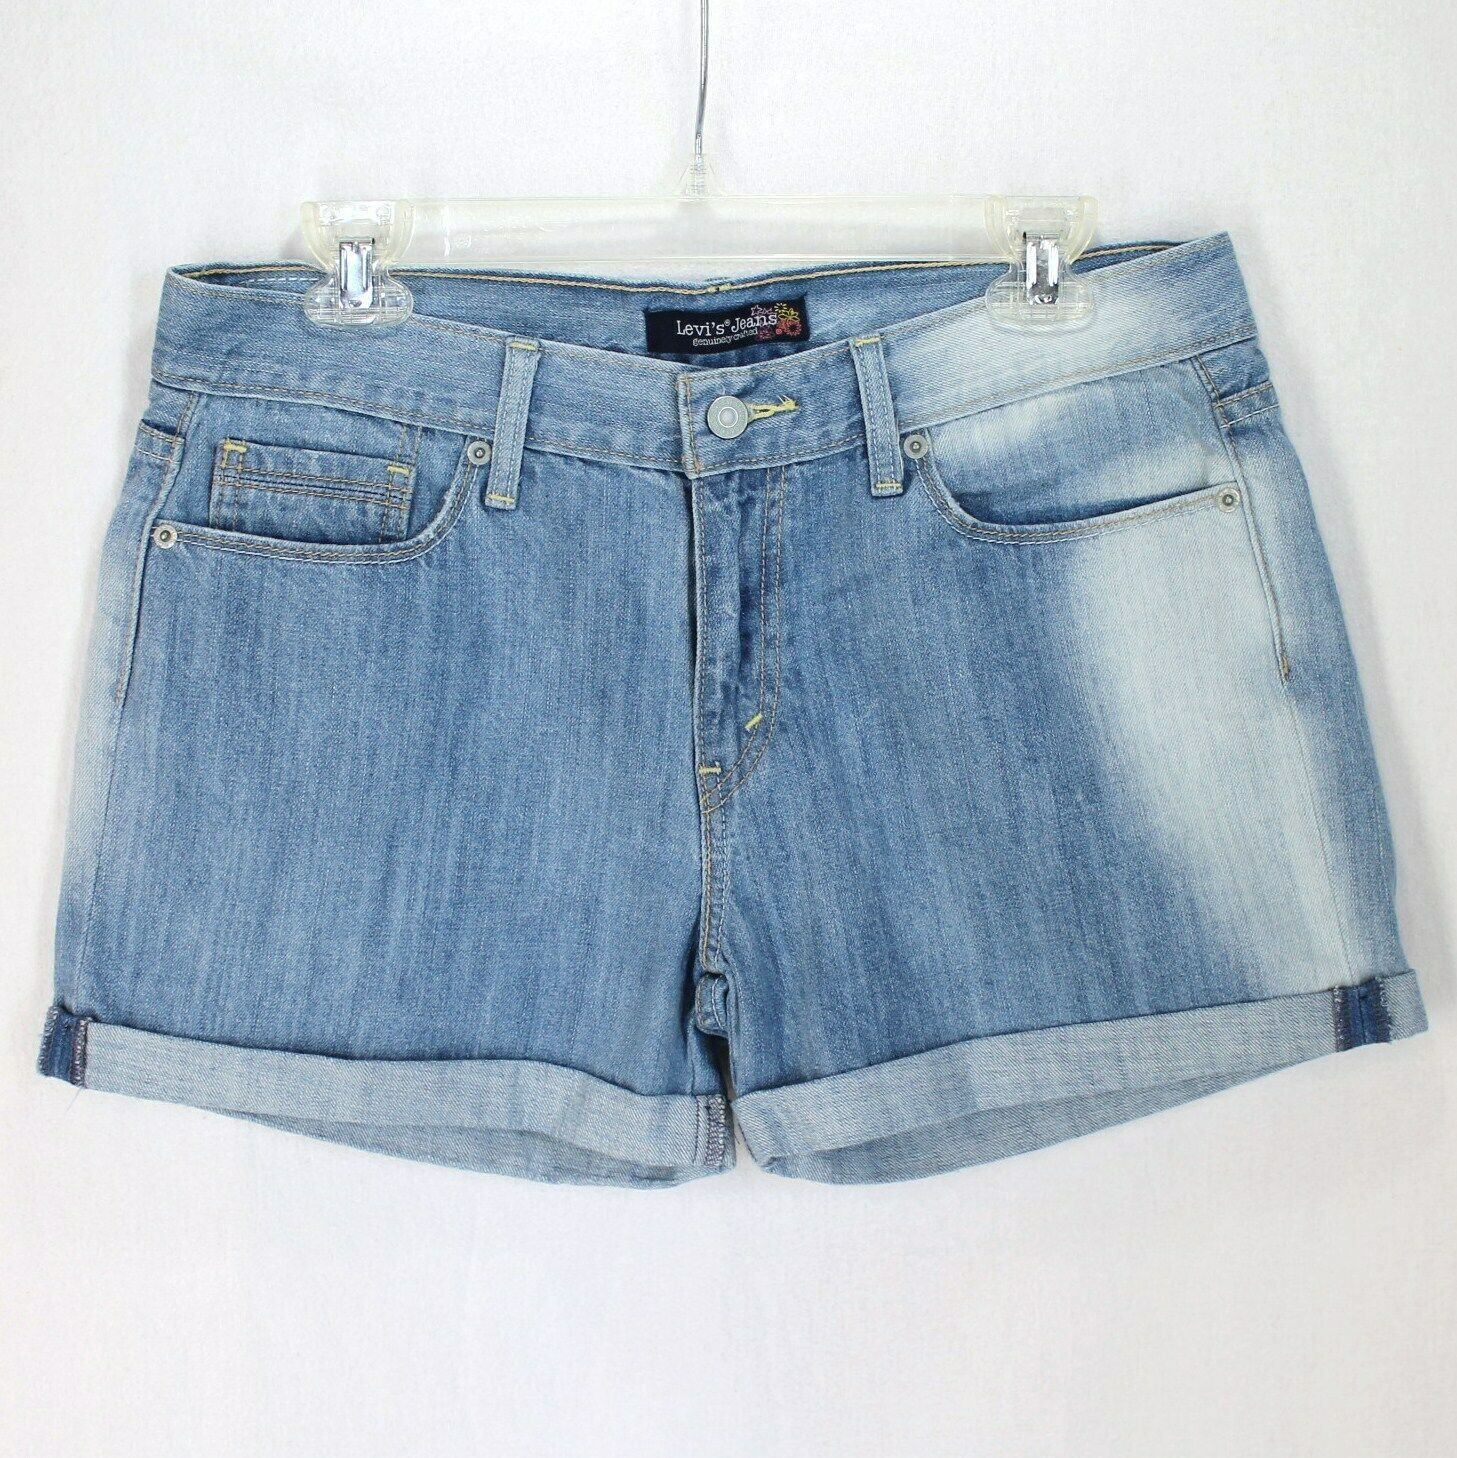 Levis Jean Shorts Juniors Sz 11 Bleached Light Wash Blue Denim Cuffed - $14.99